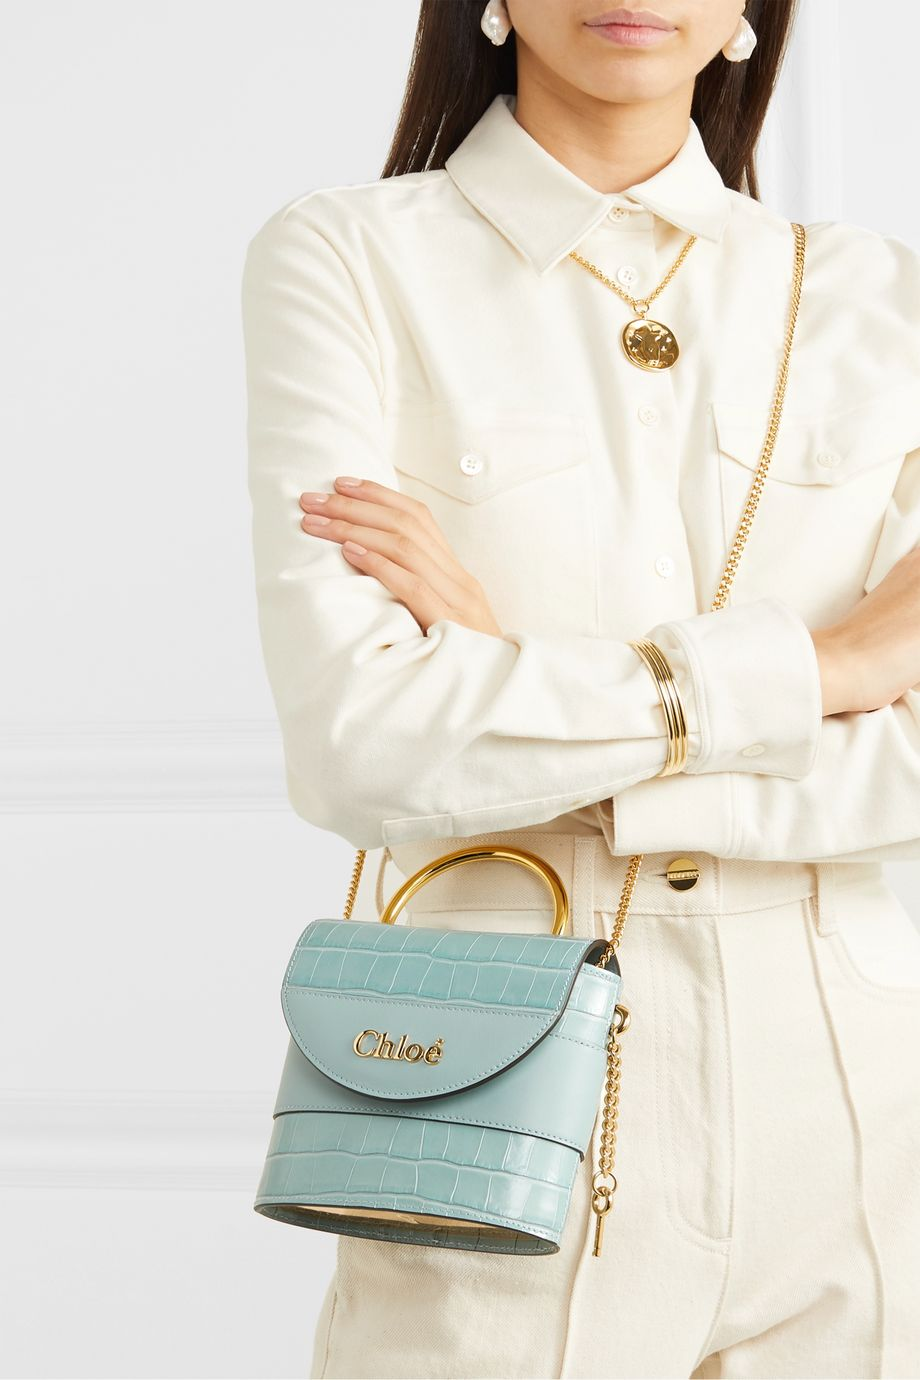 Chloé Aby Lock small croc-effect leather shoulder bag